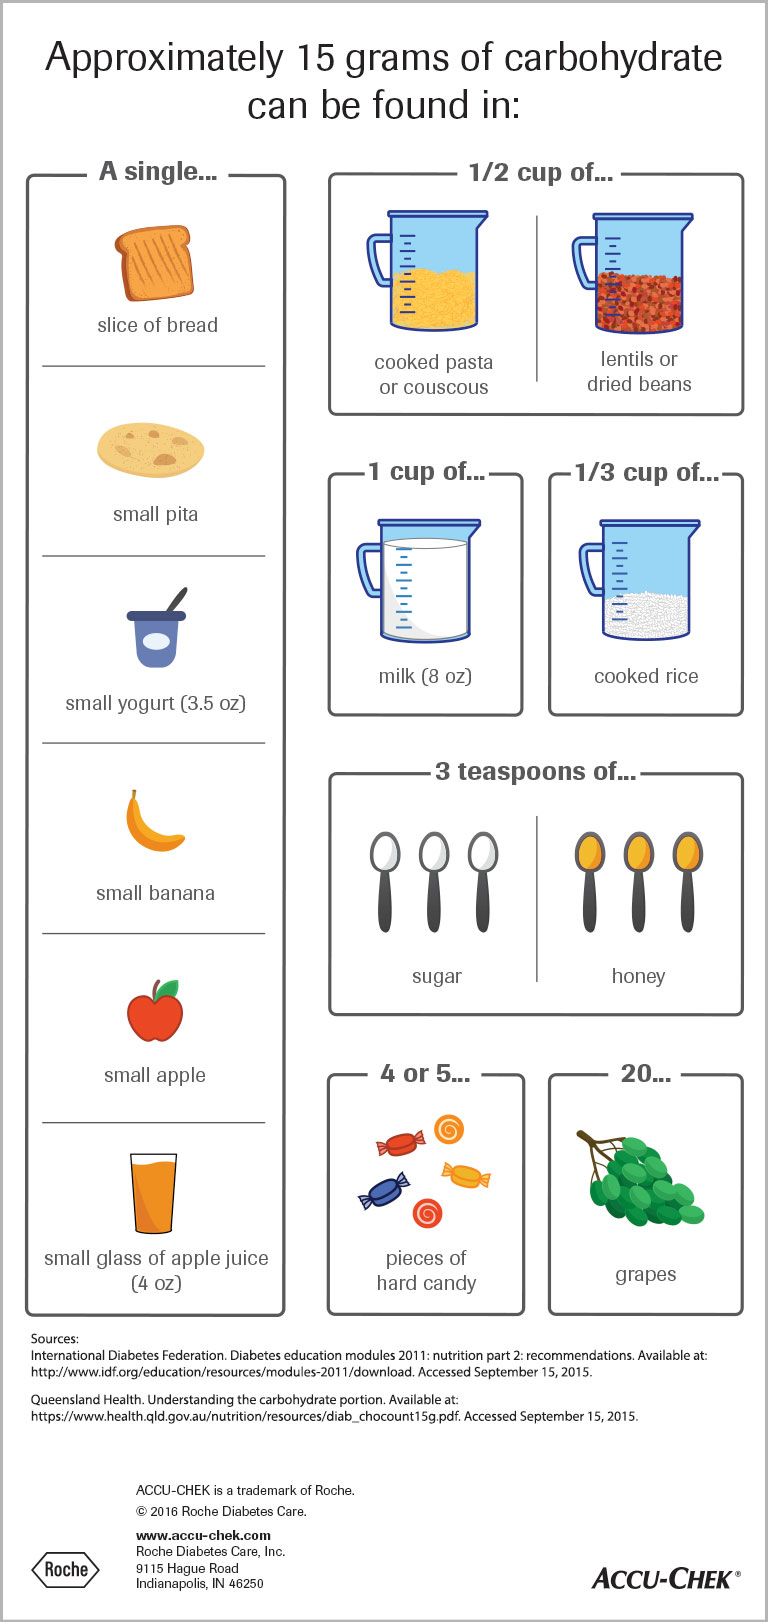 Infographic detailing foods that contain 15 grams of carbohydrates, including a slice of bread and a cup of milk